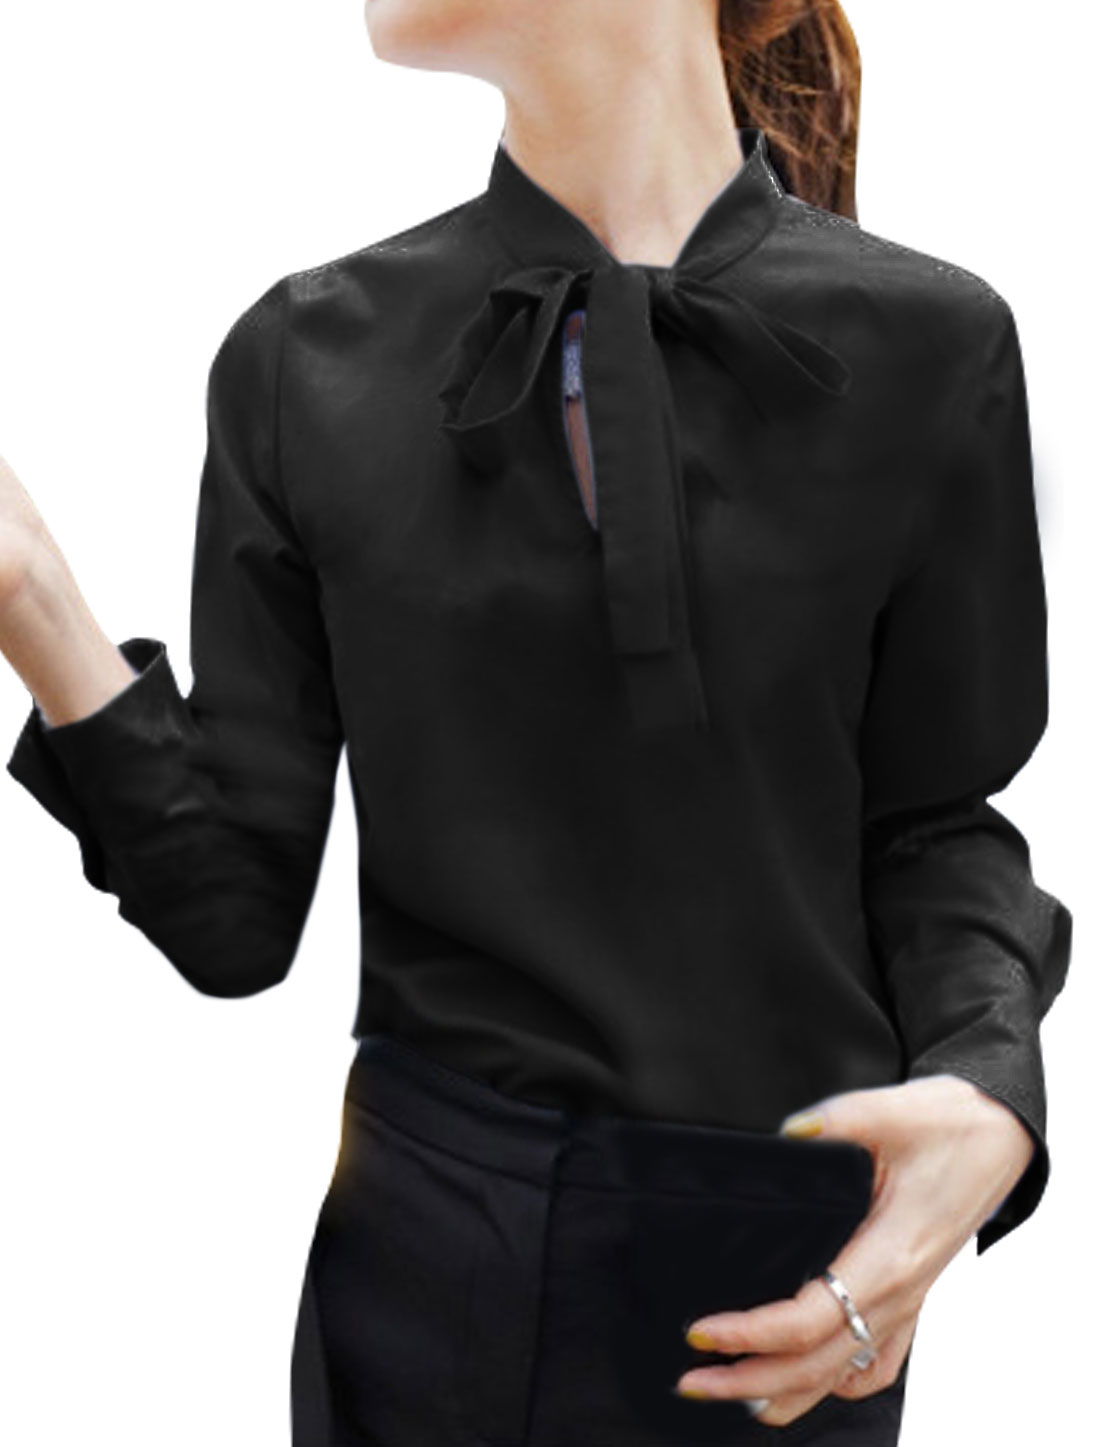 Women Tie Neck Long Sleeves Casual Blouse Black S